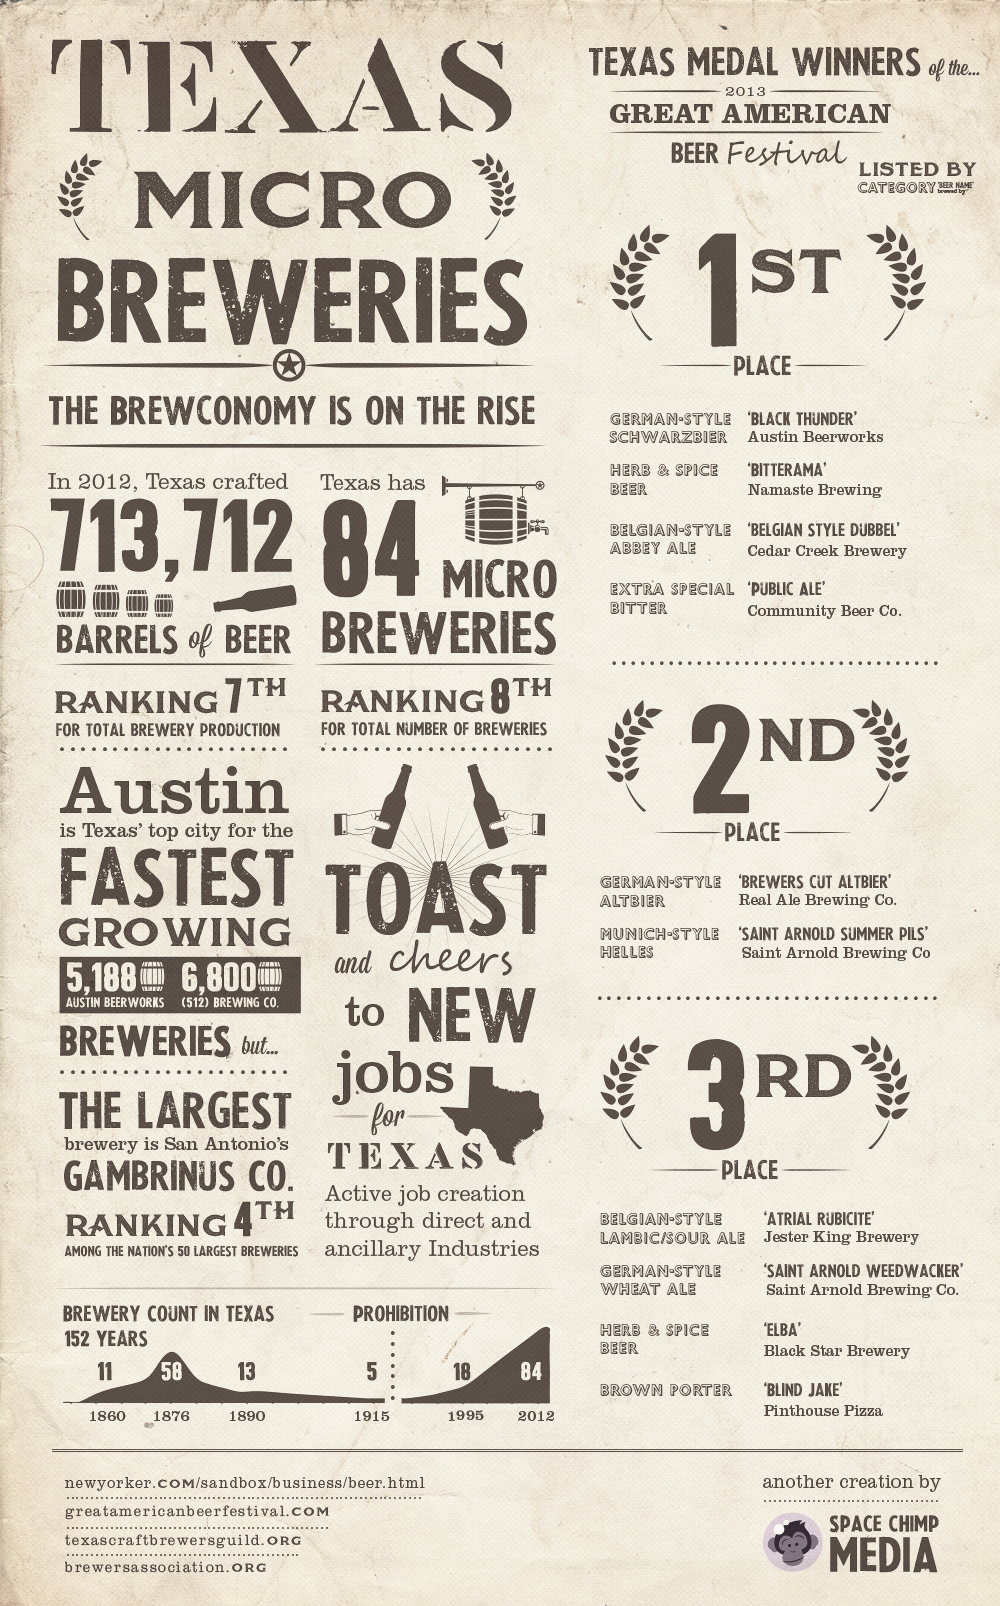 Texas Micro Breweries